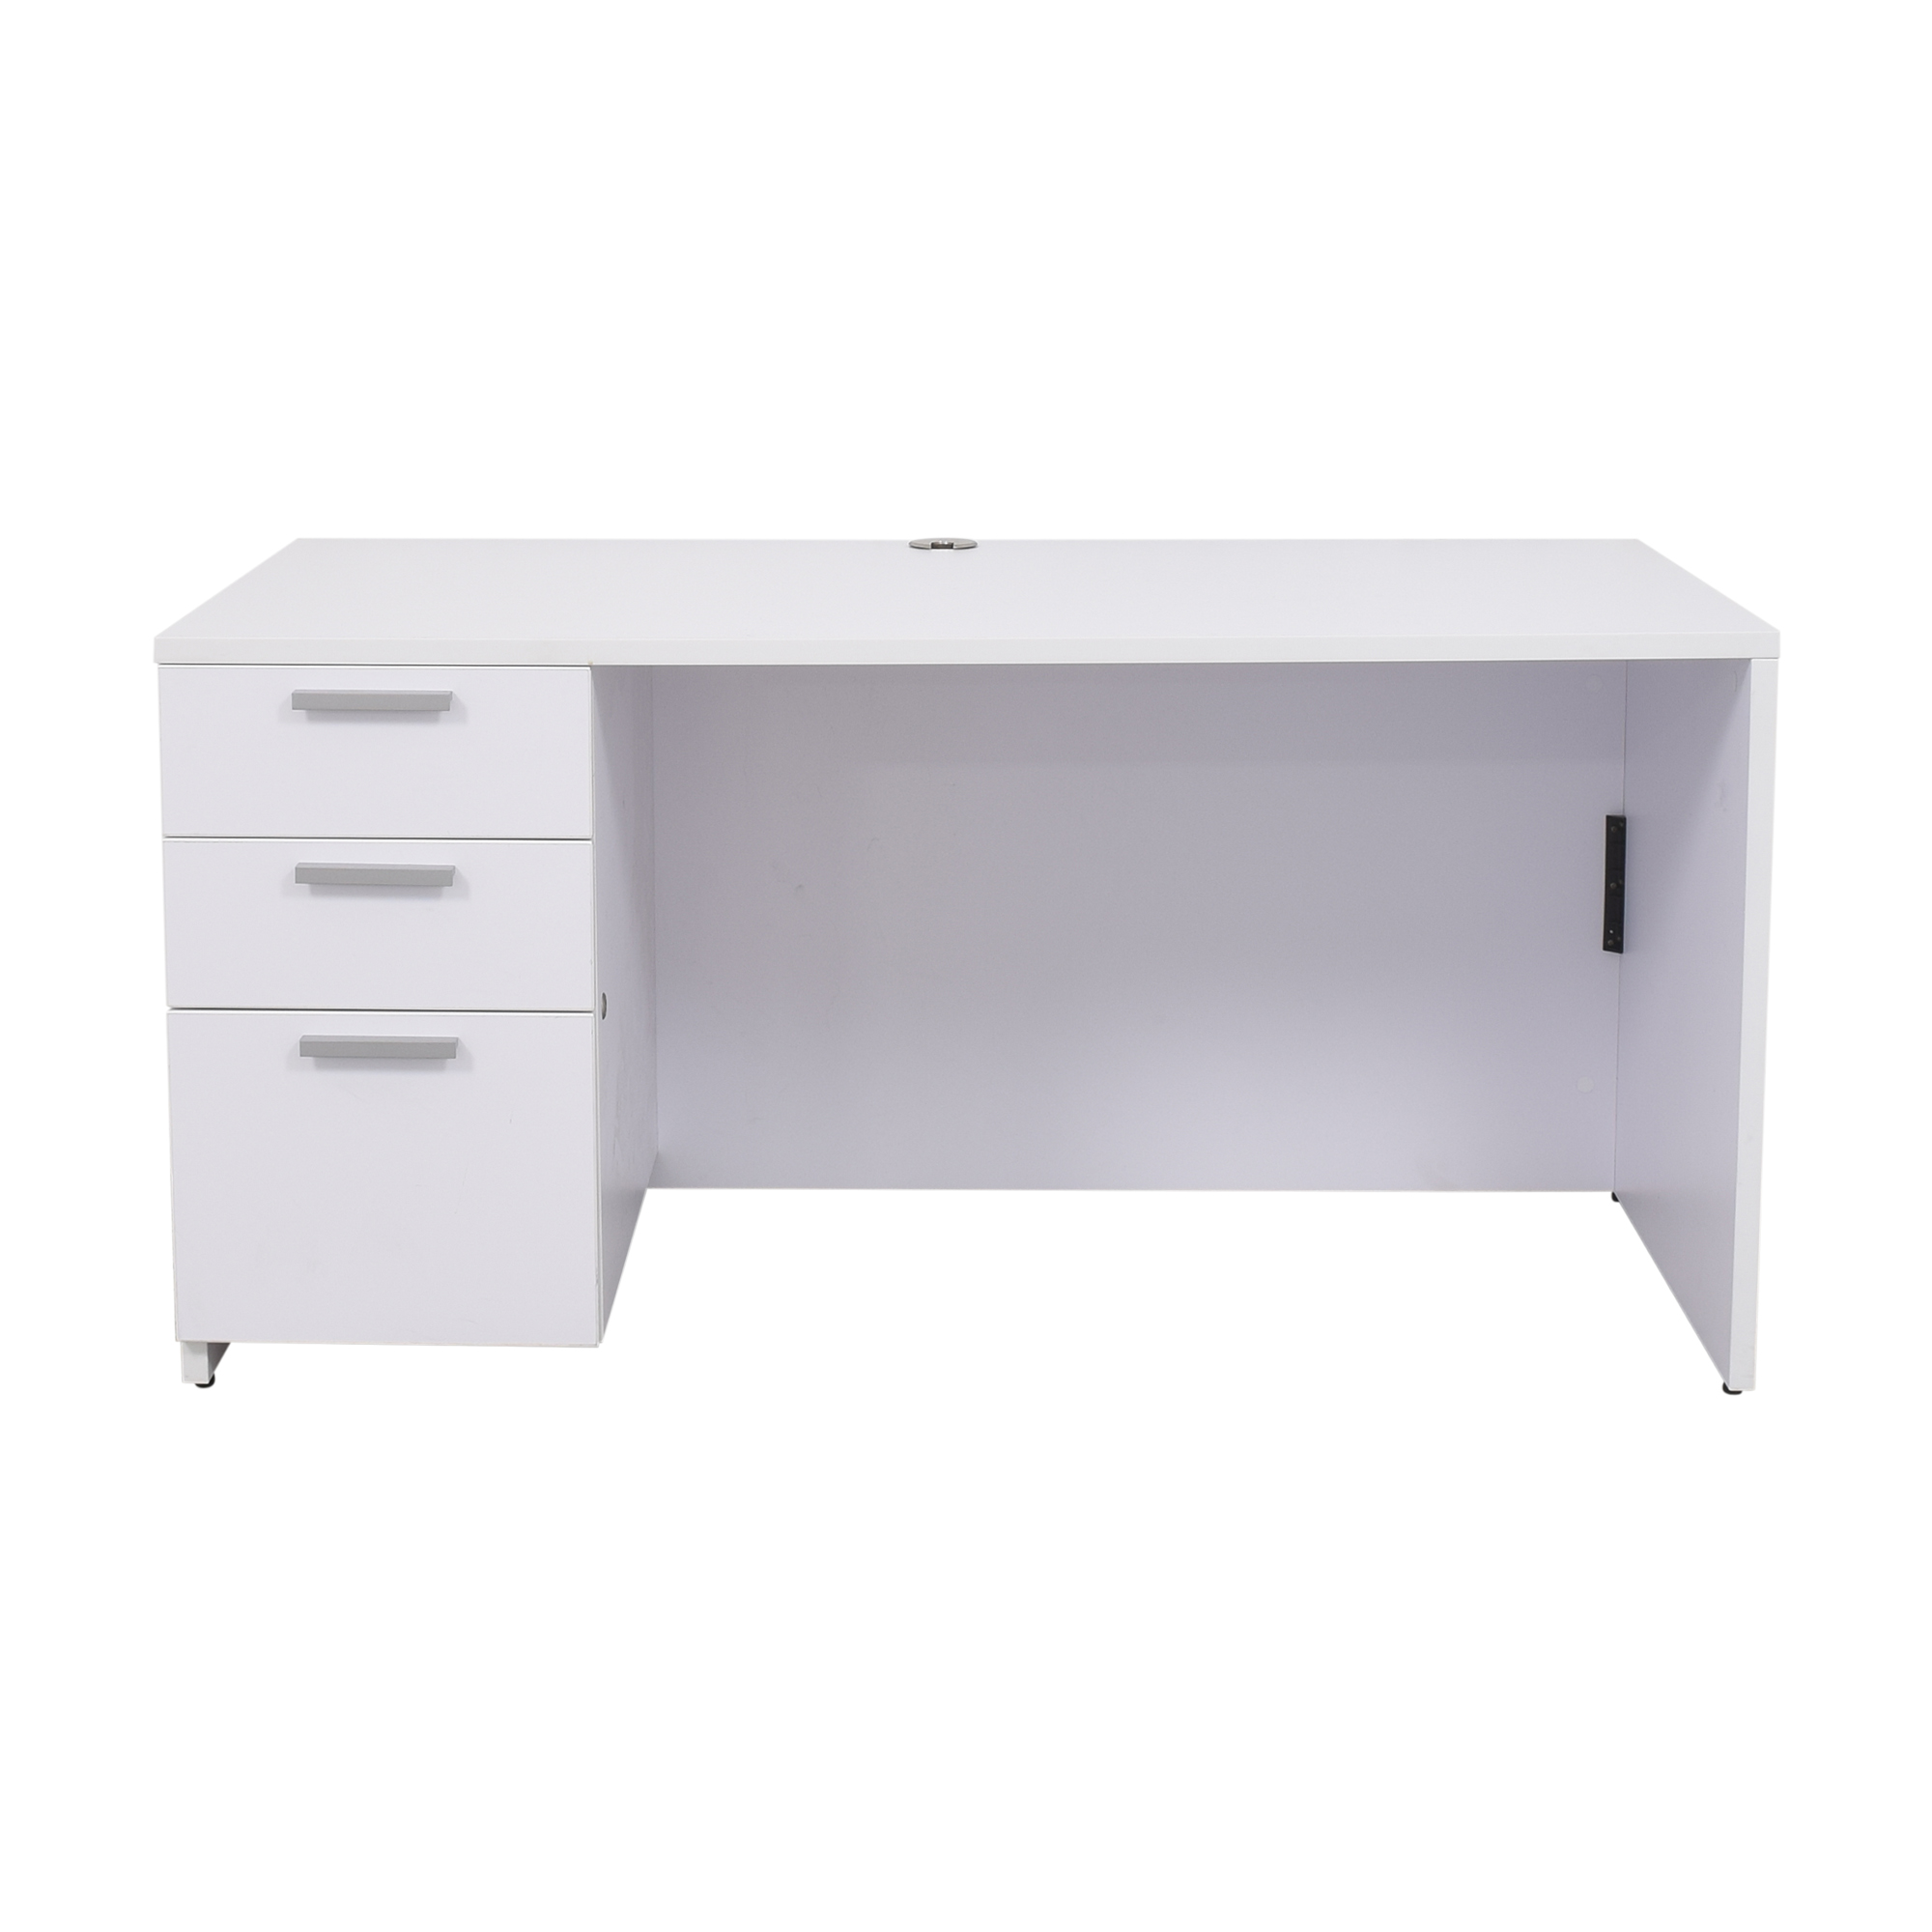 buy Steelcase Currency Single Pedestal Desk Steelcase Tables